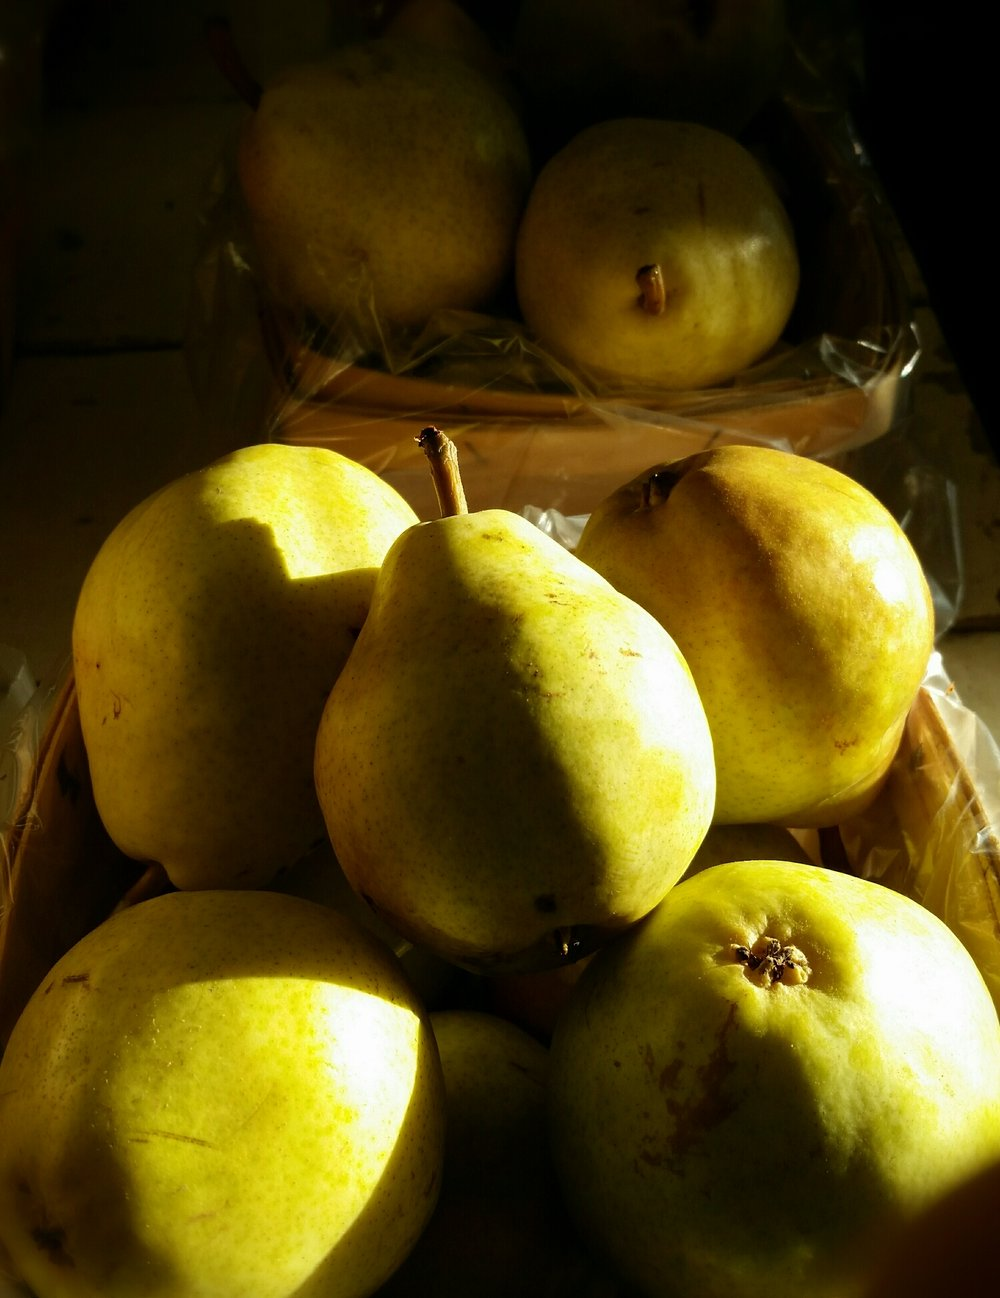 Bartlett Pears, ready to eat!